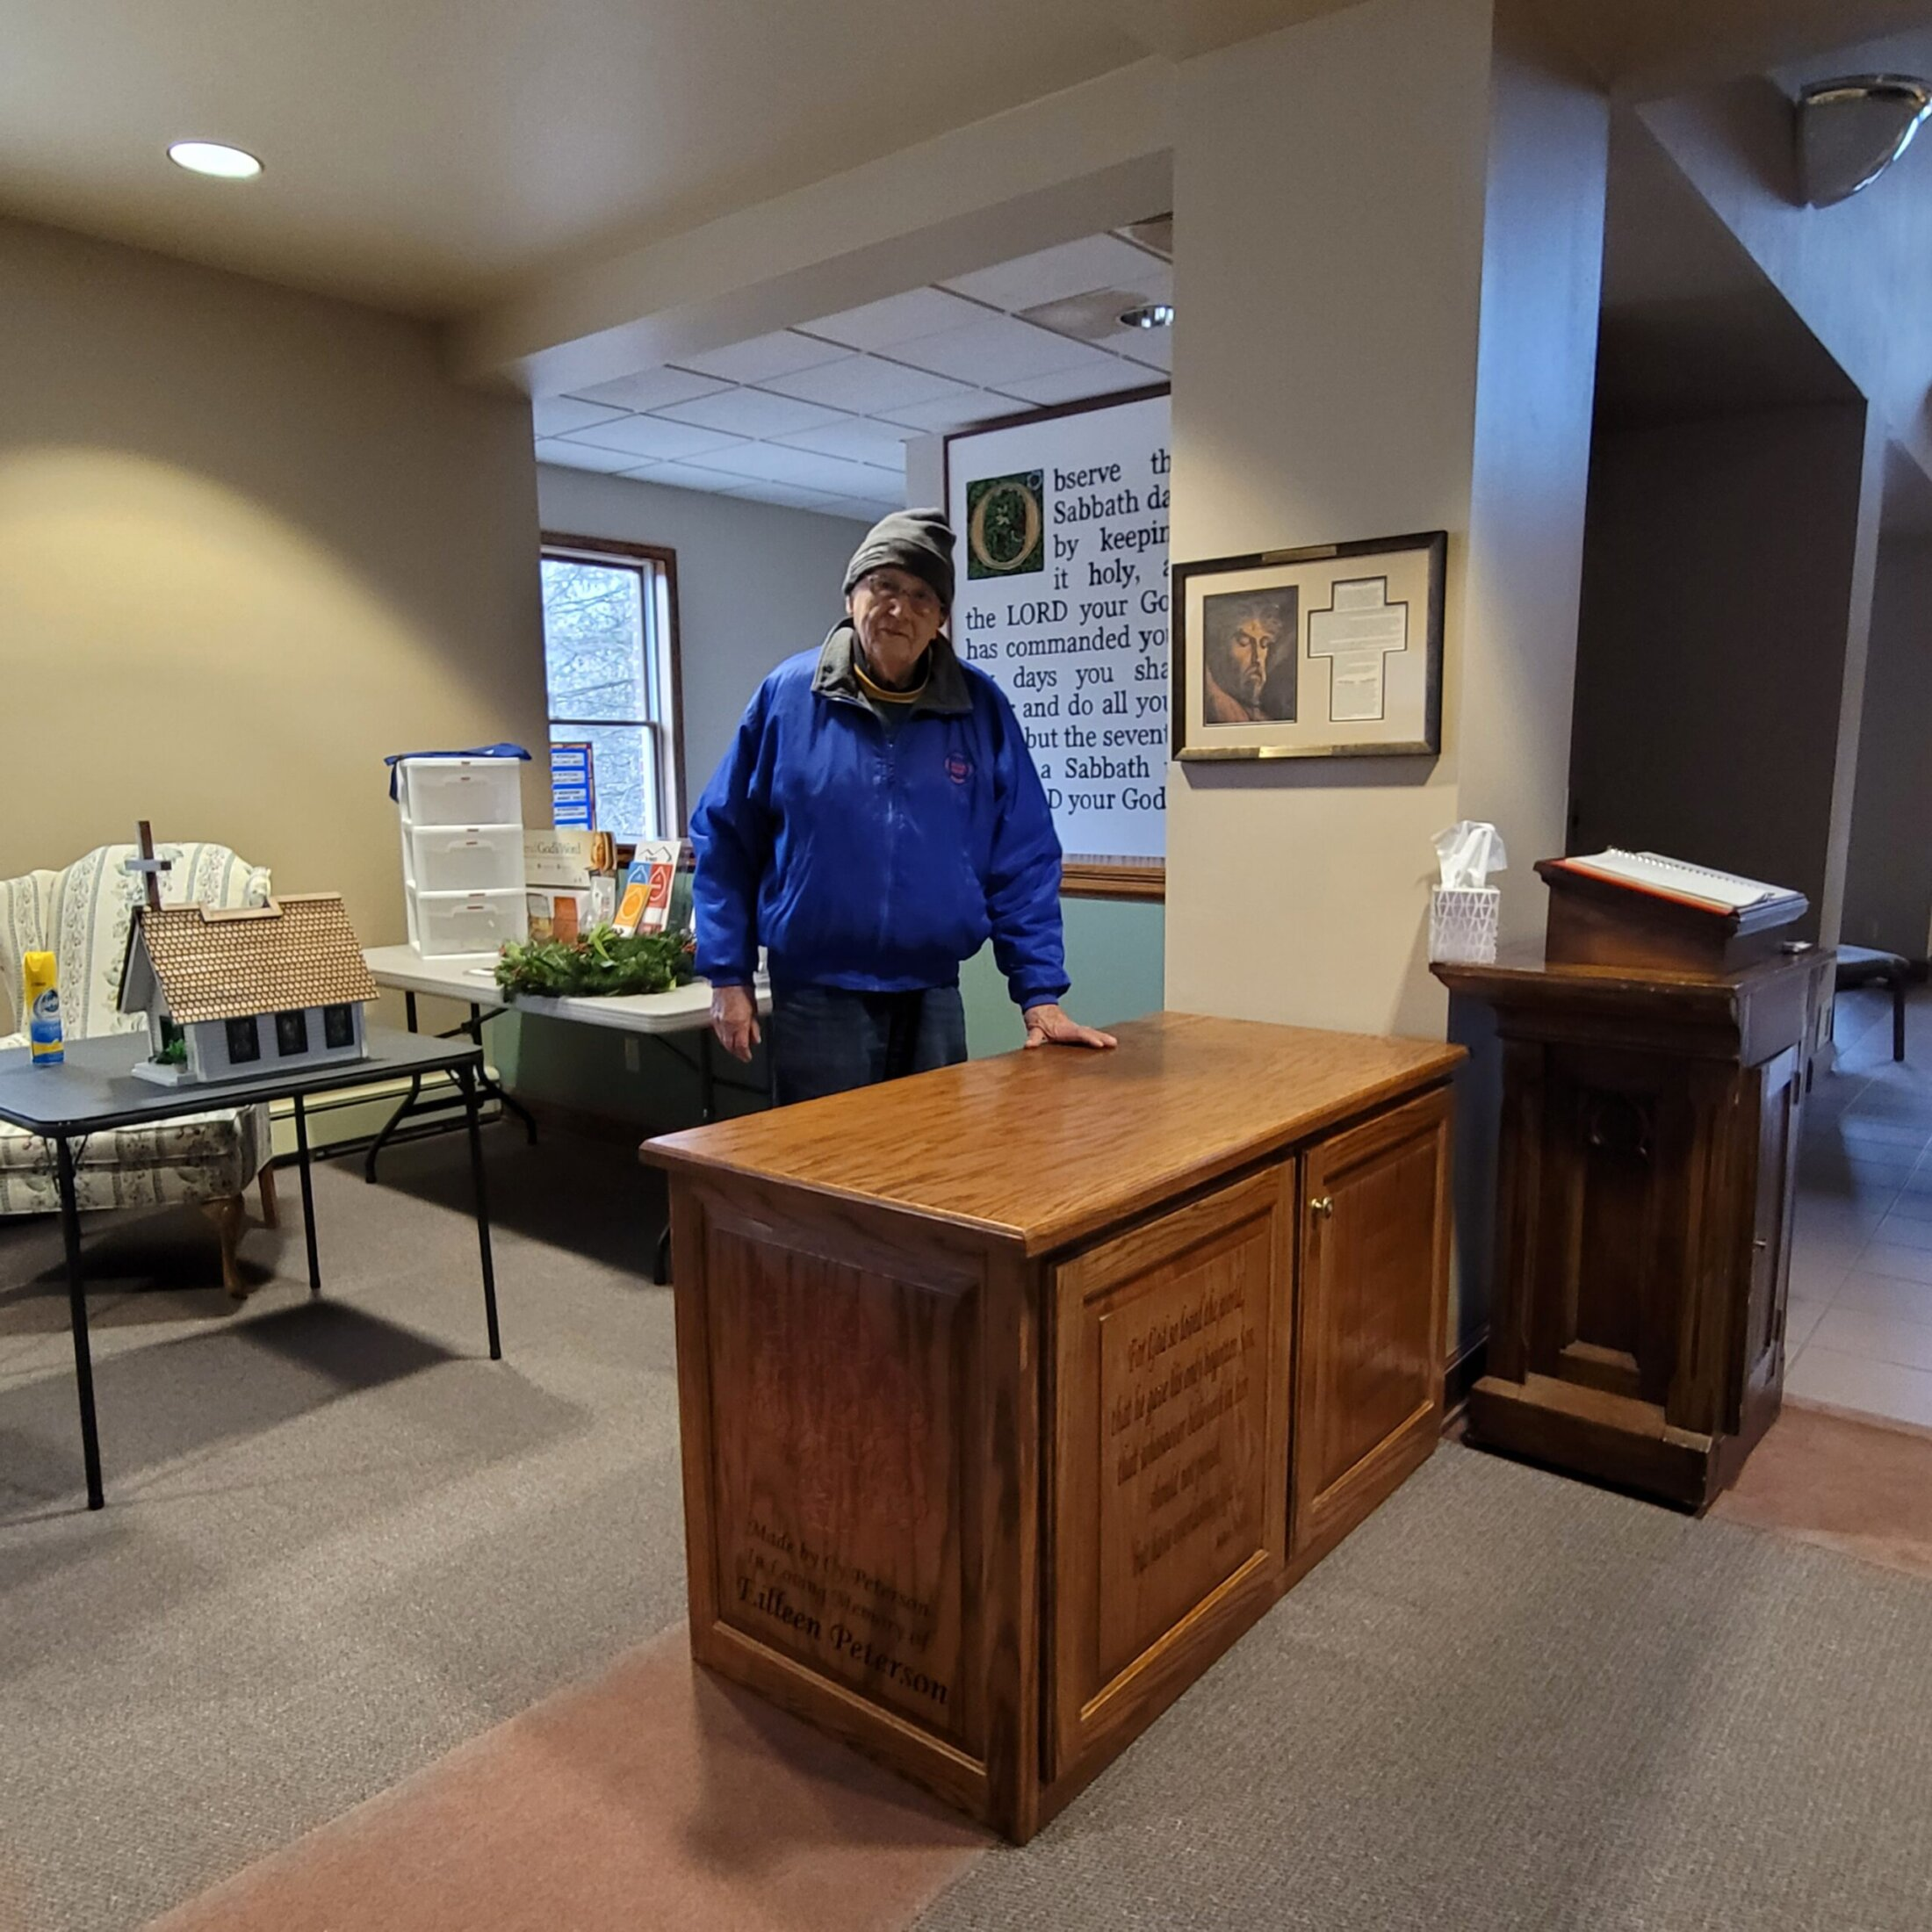 Oak Desk/Cabinet my Dad, Cy made in Memory of my Mom for Kettle Moraine United Presbyterian Church